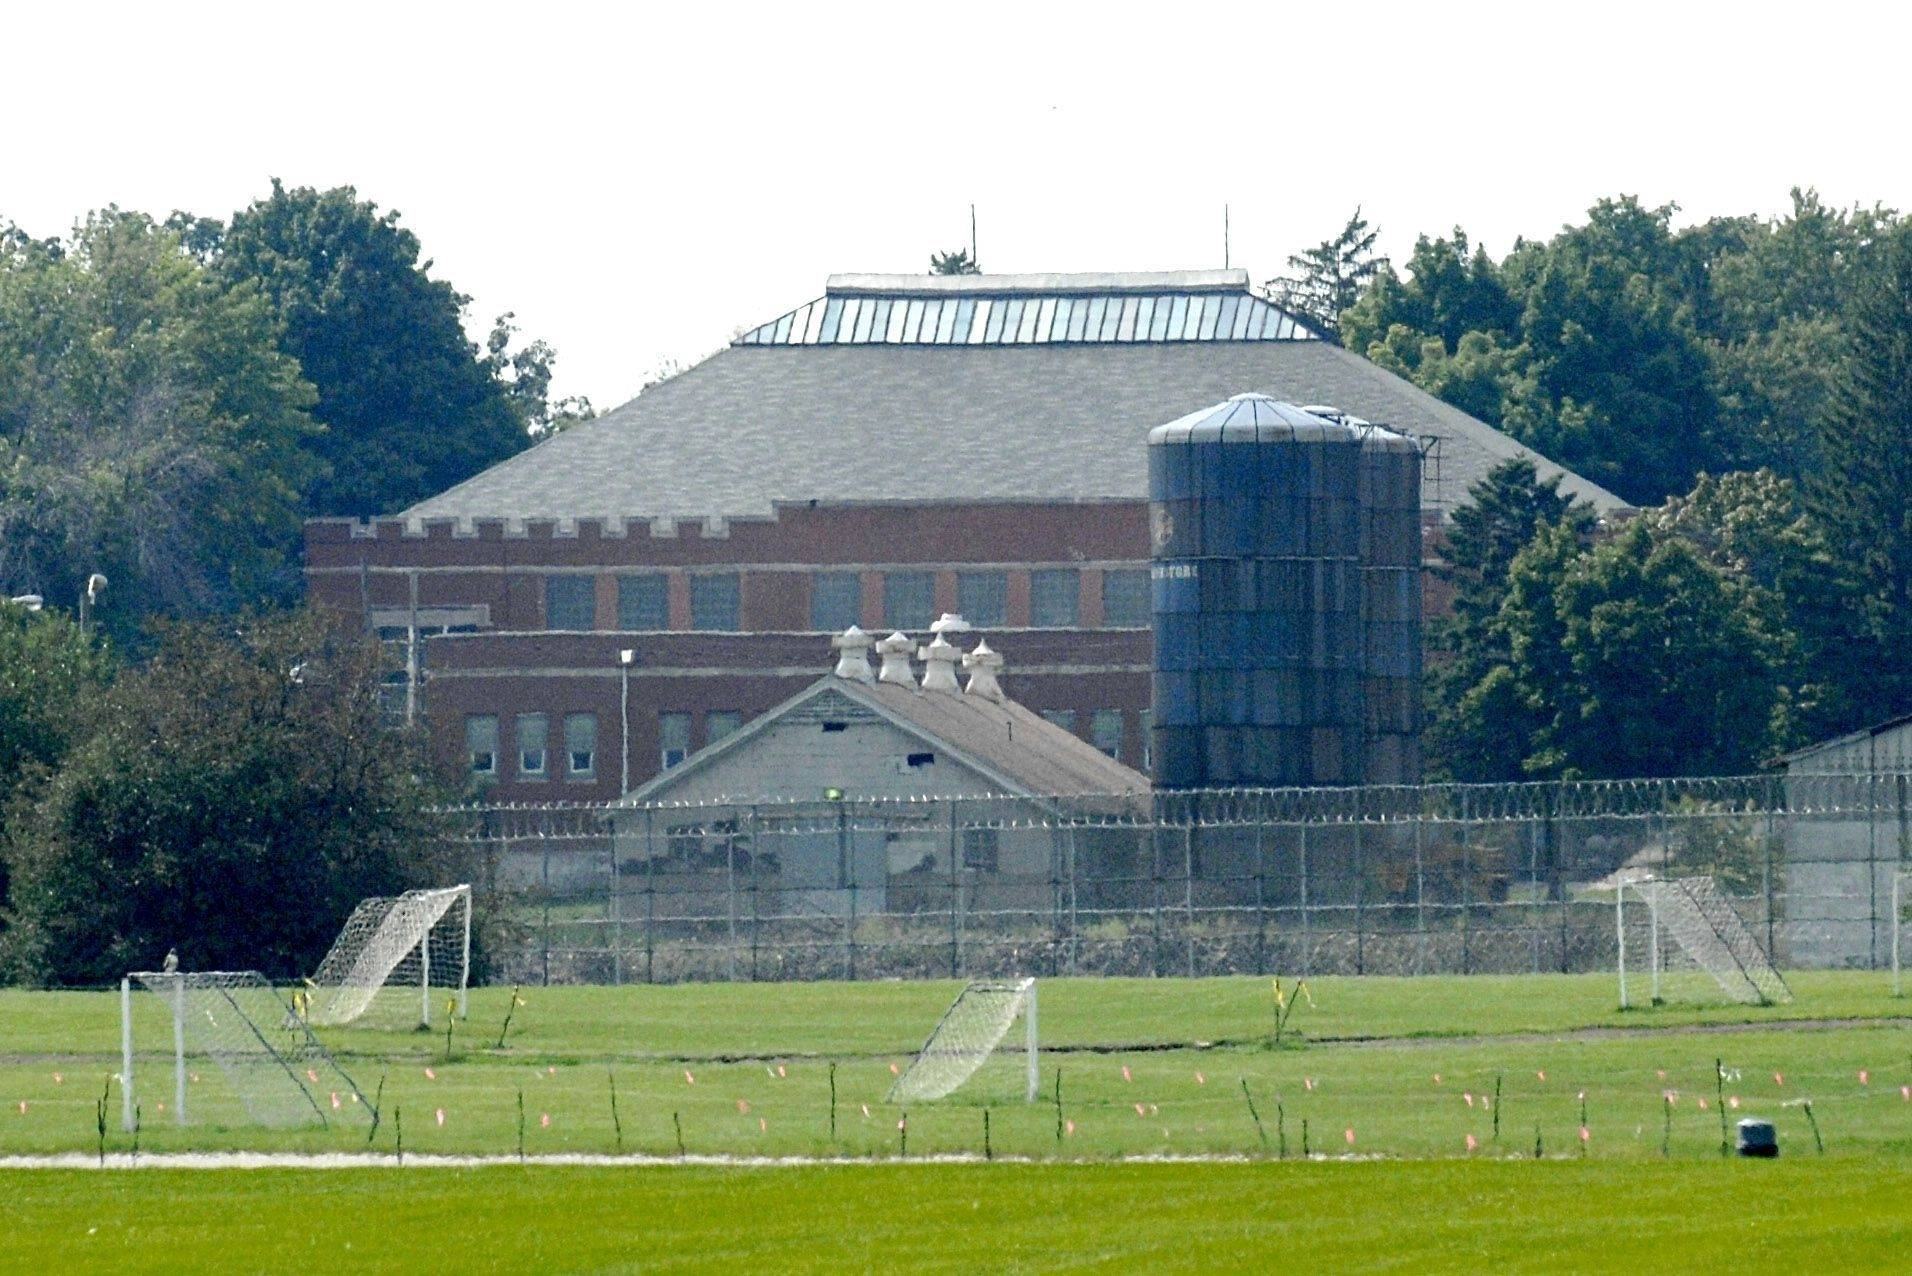 Report: Mental health care lacking at state's youth prisons